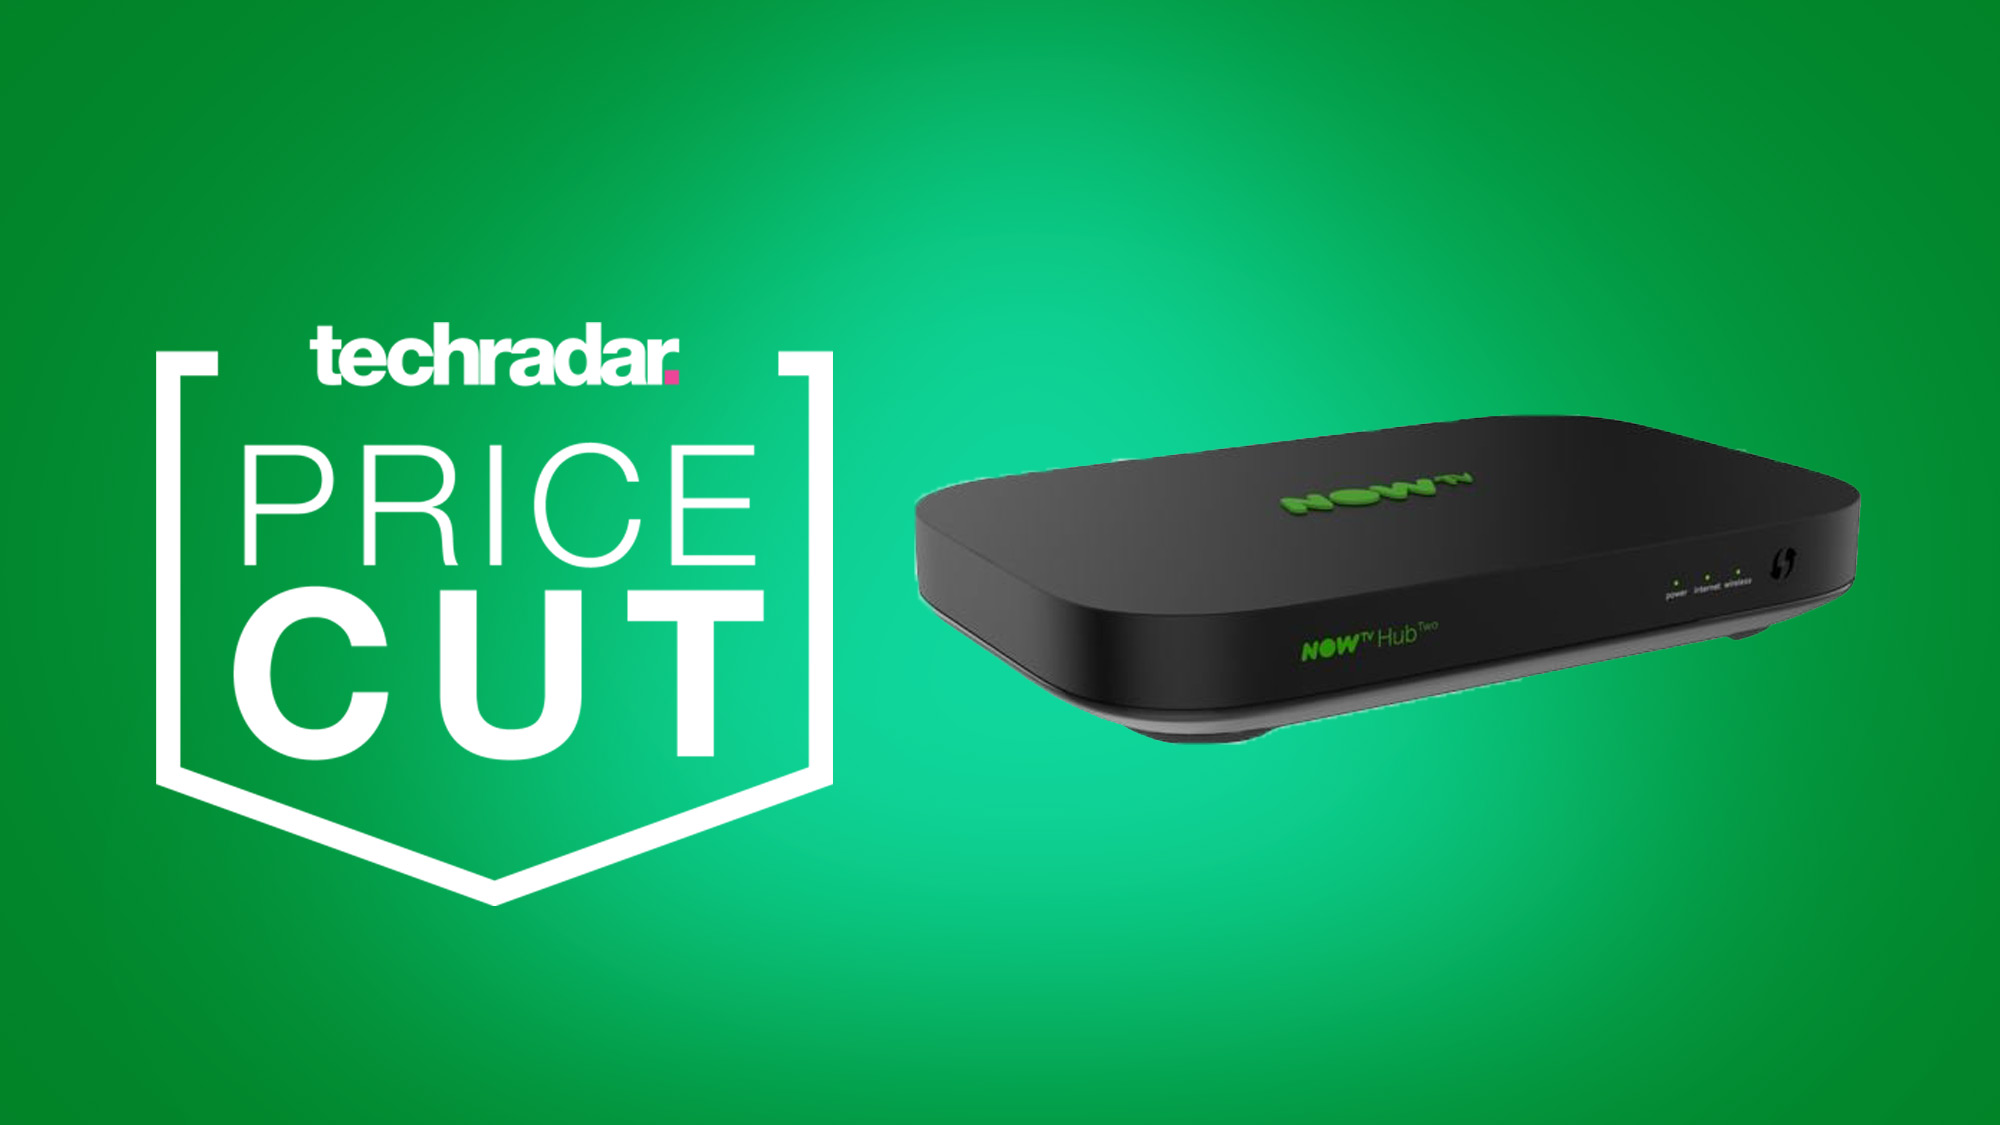 Now has dropped the price of its fibre broadband deals making it a top choice